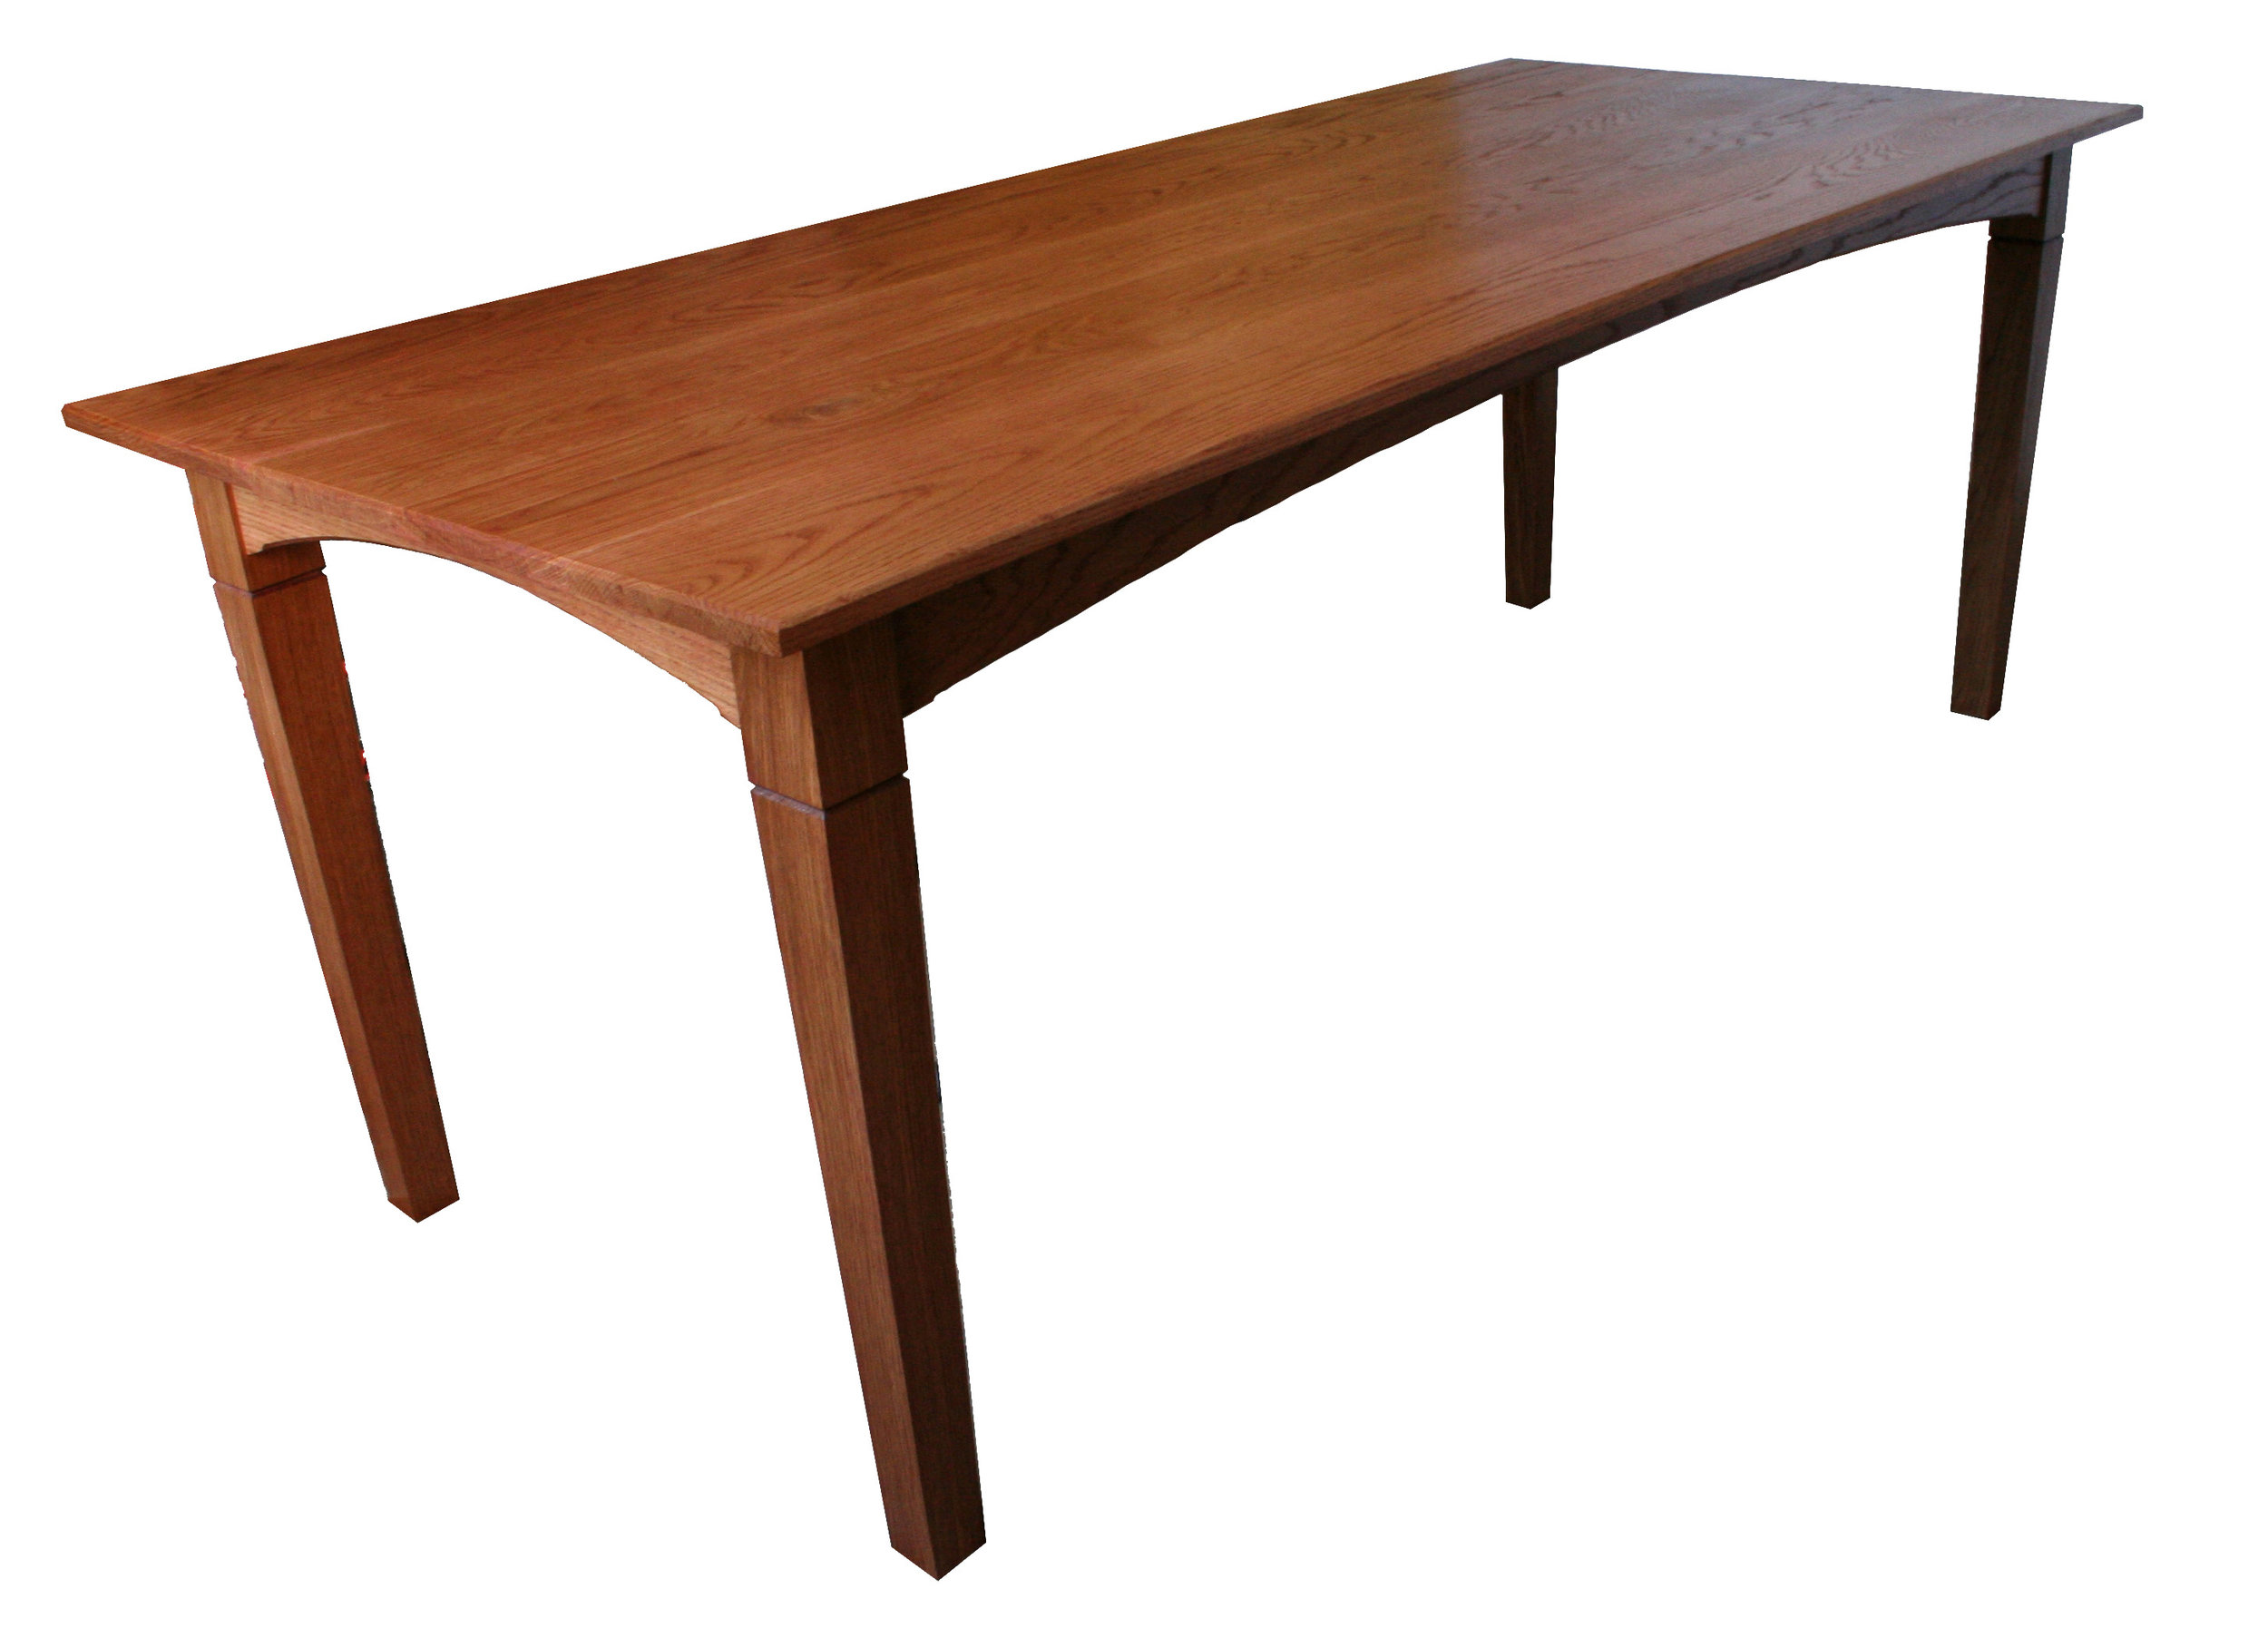 Dining Table in red oak